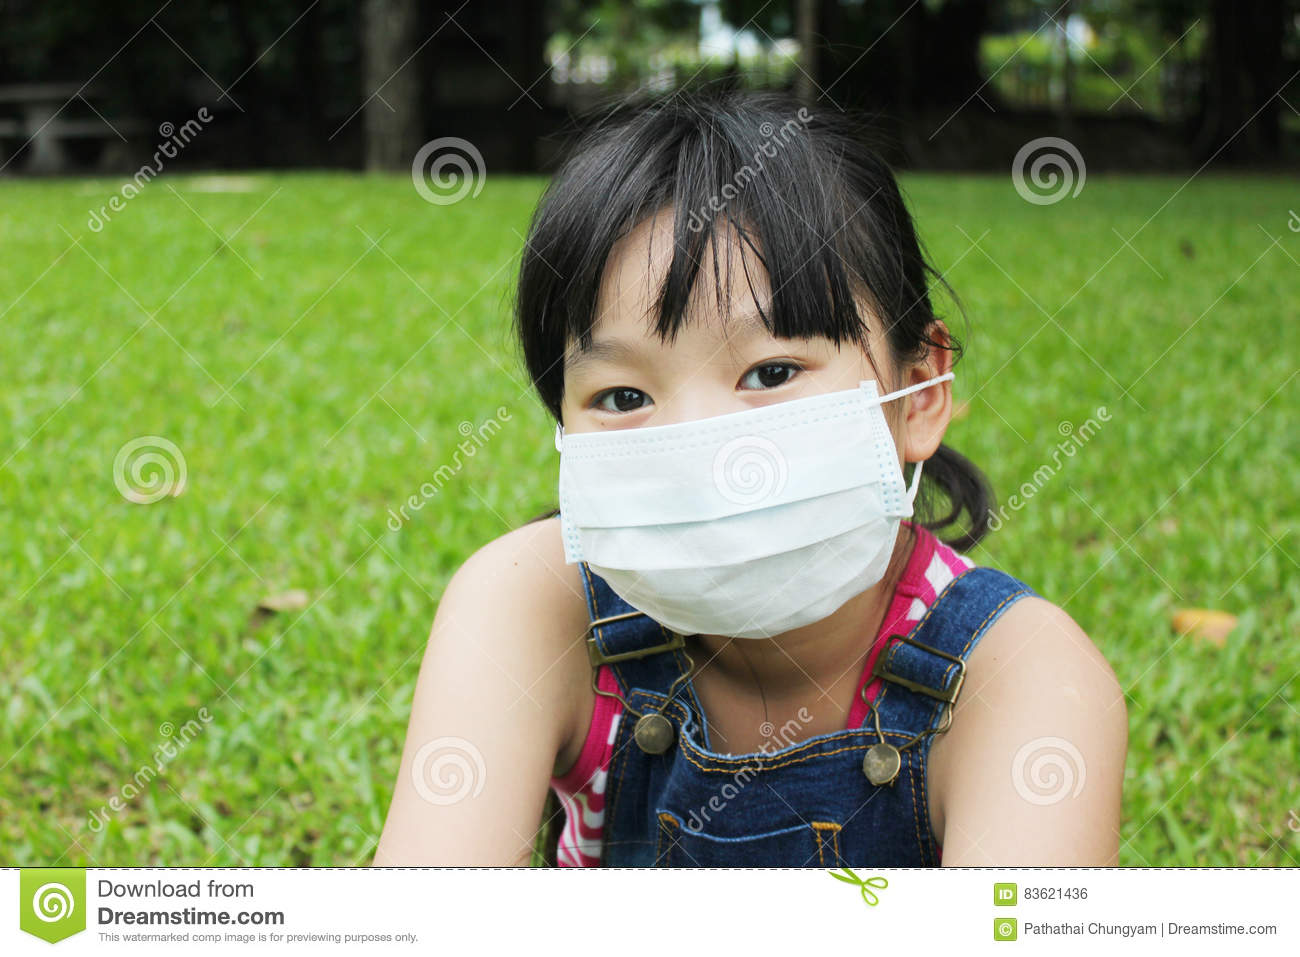 Fever Of A And Protection - Wear Stock Have Image Mask Photo Girl